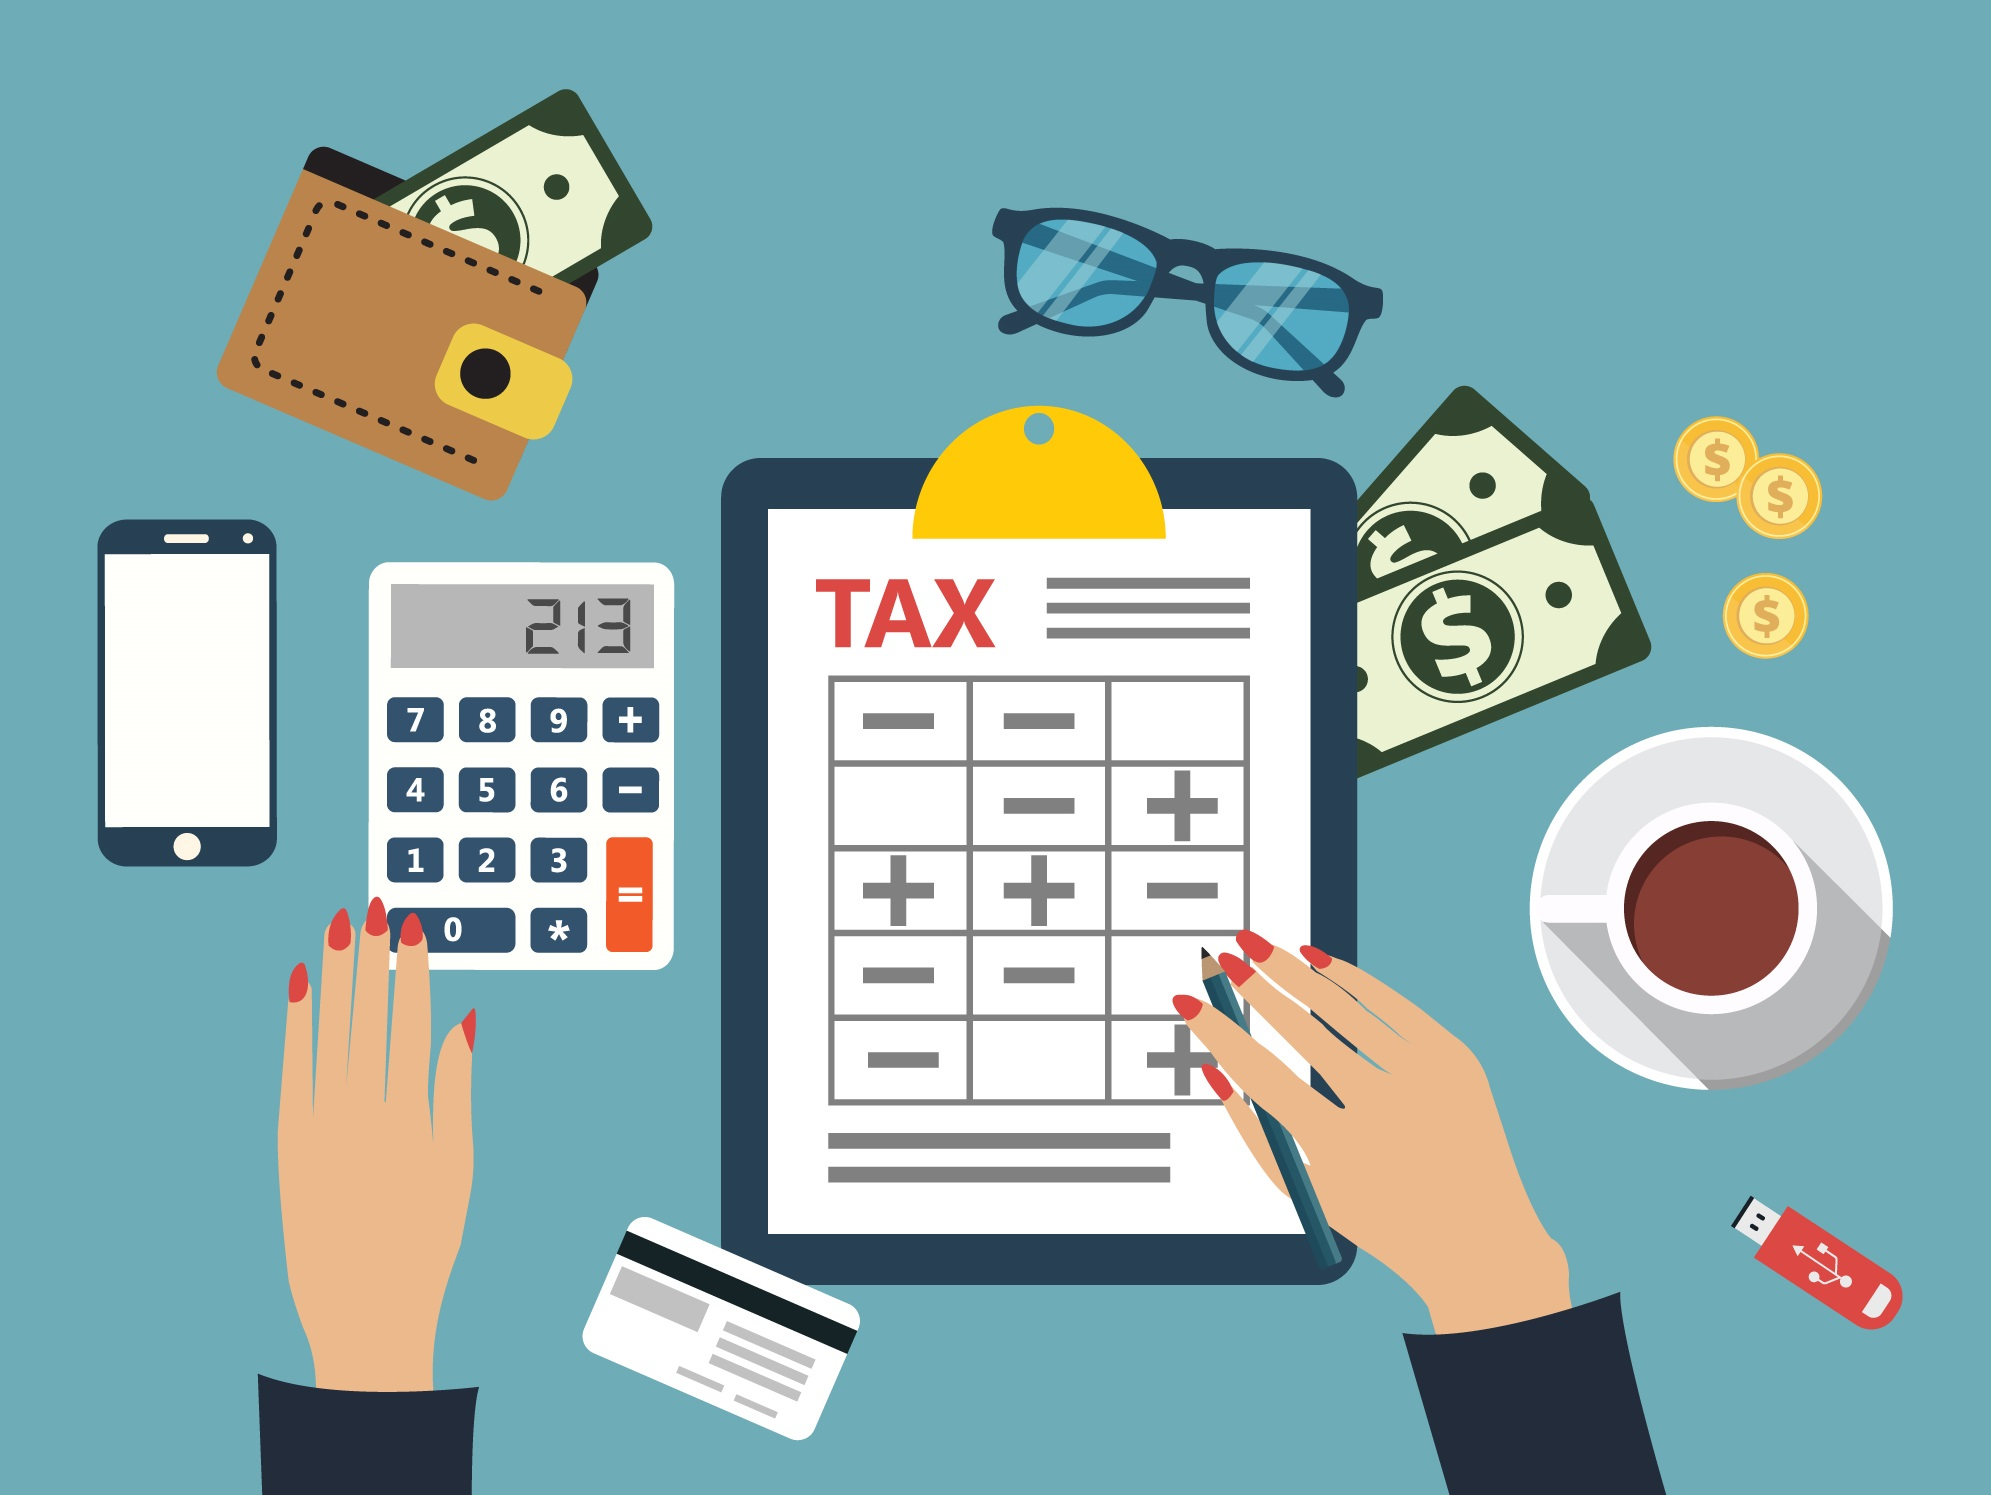 Quick Guide to Filing your Income Tax Returns - Connect@ADP an ADP India HR Blog